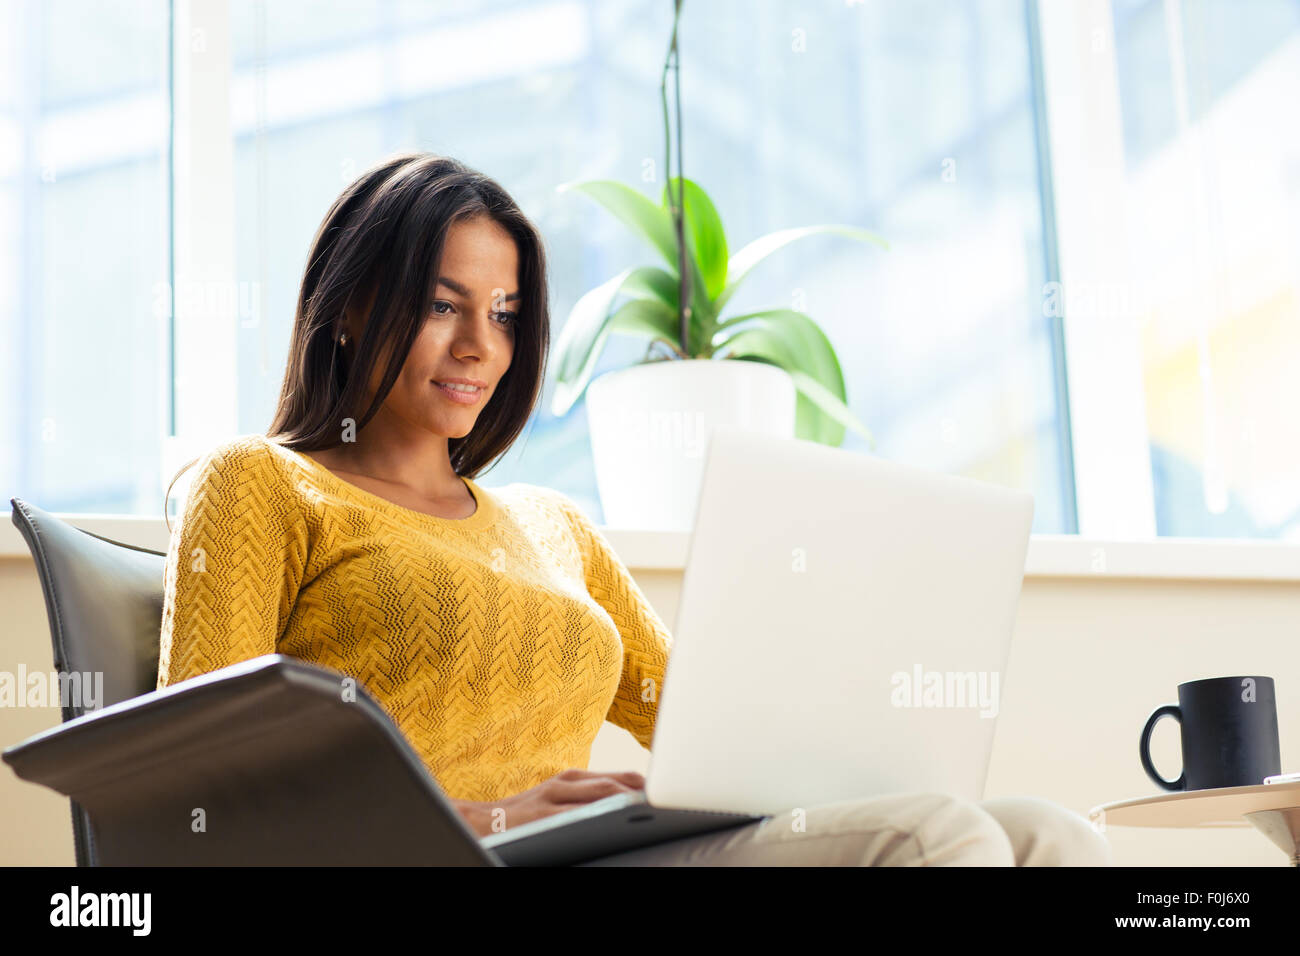 Happy casual businesswoman sitting on office chair with laptop in office - Stock Image